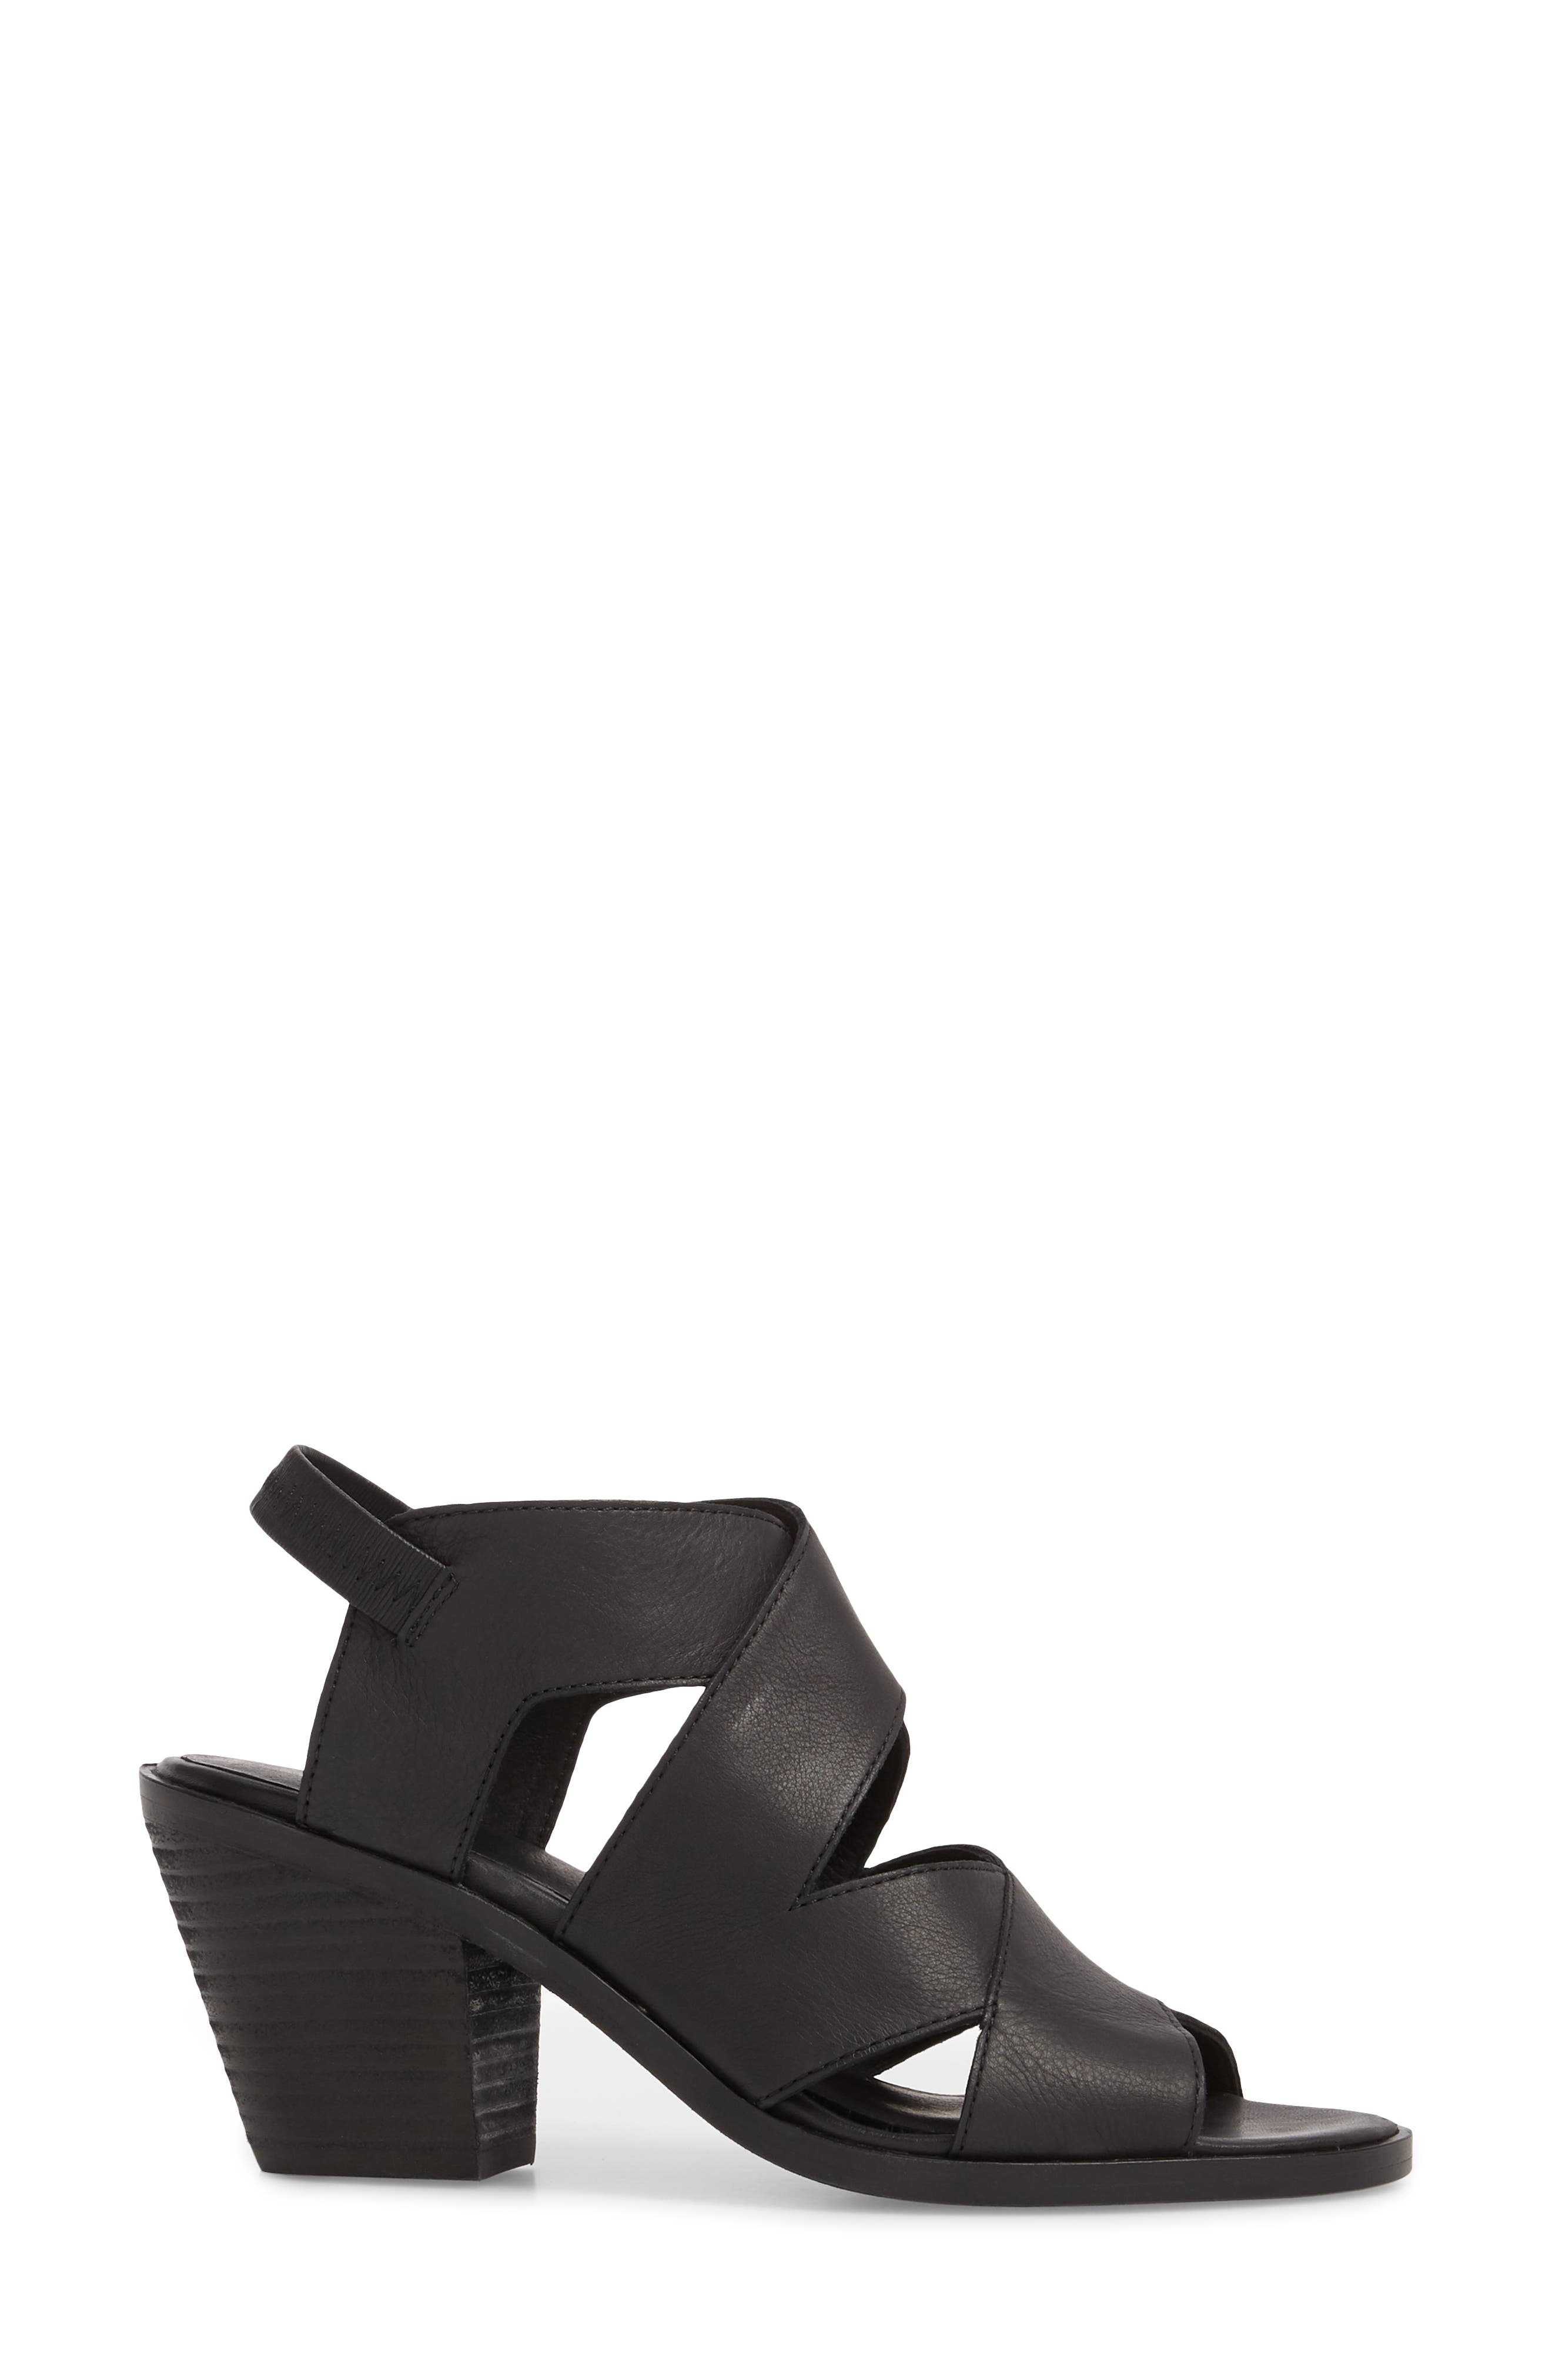 Rai Sandal,                             Alternate thumbnail 3, color,                             Black Leather